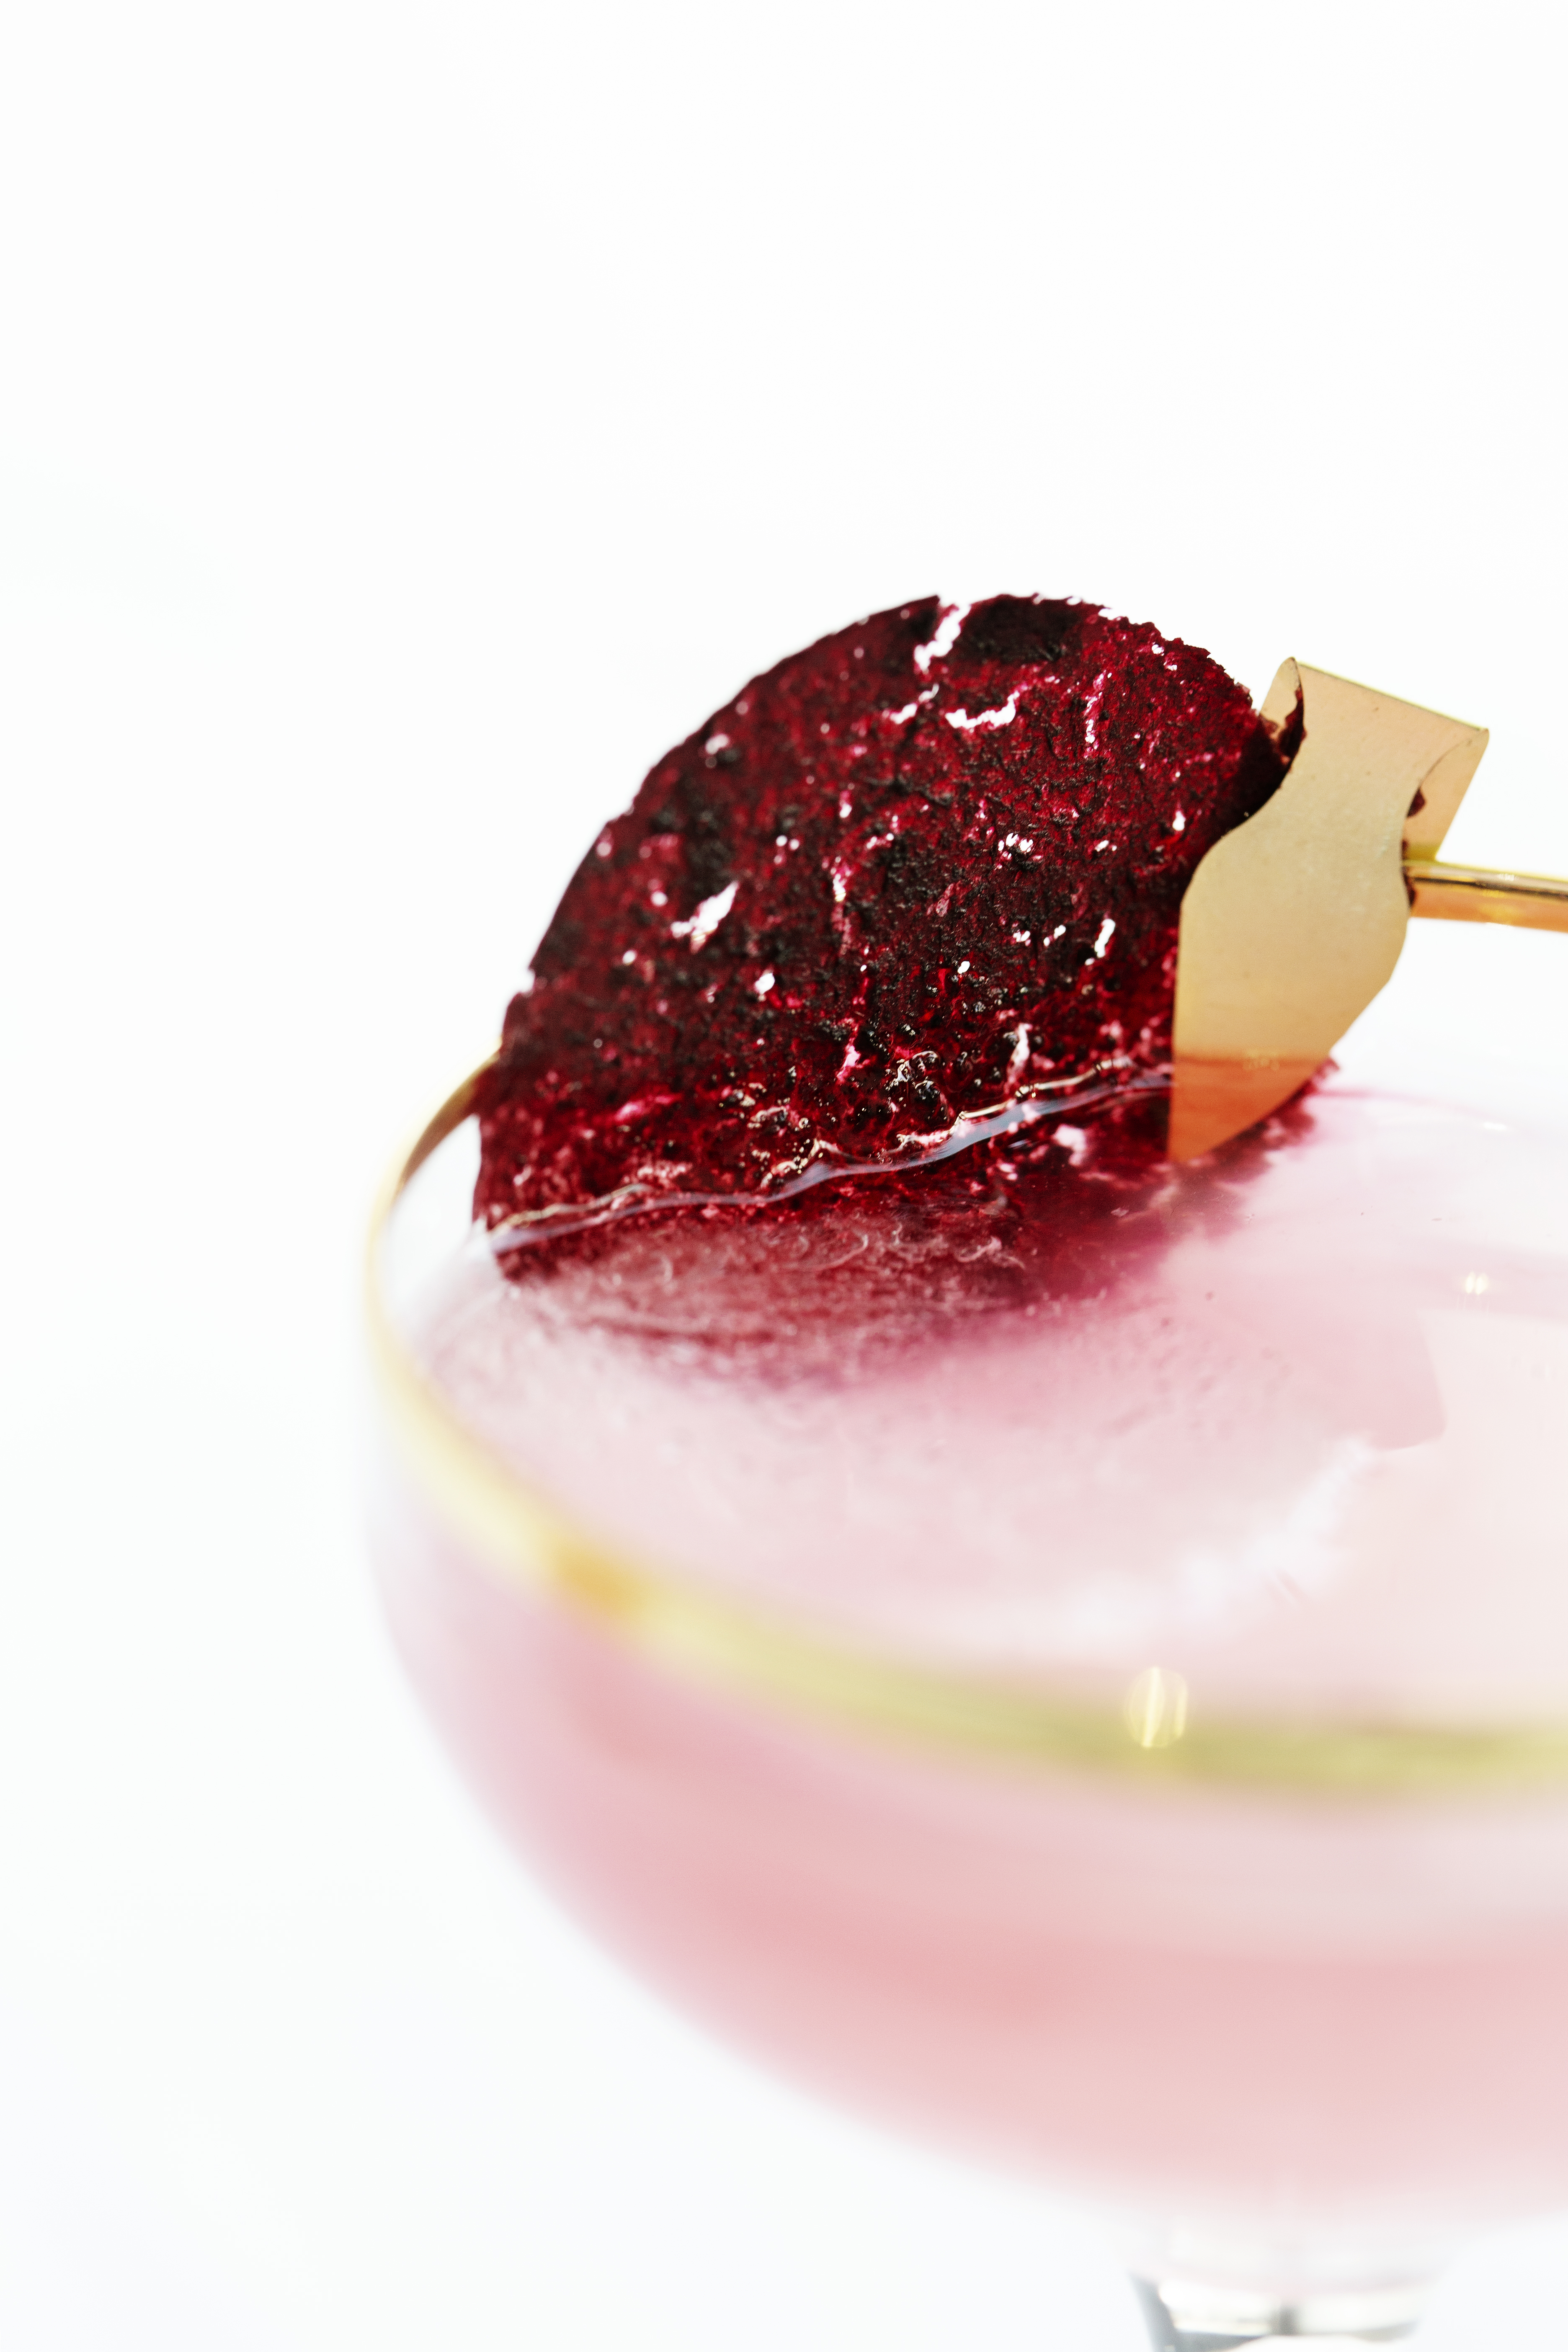 Wild Yeasts, Ancient Chemistry and Rubber Duckie Garnishes On the Coolest New Drink Menu in Town